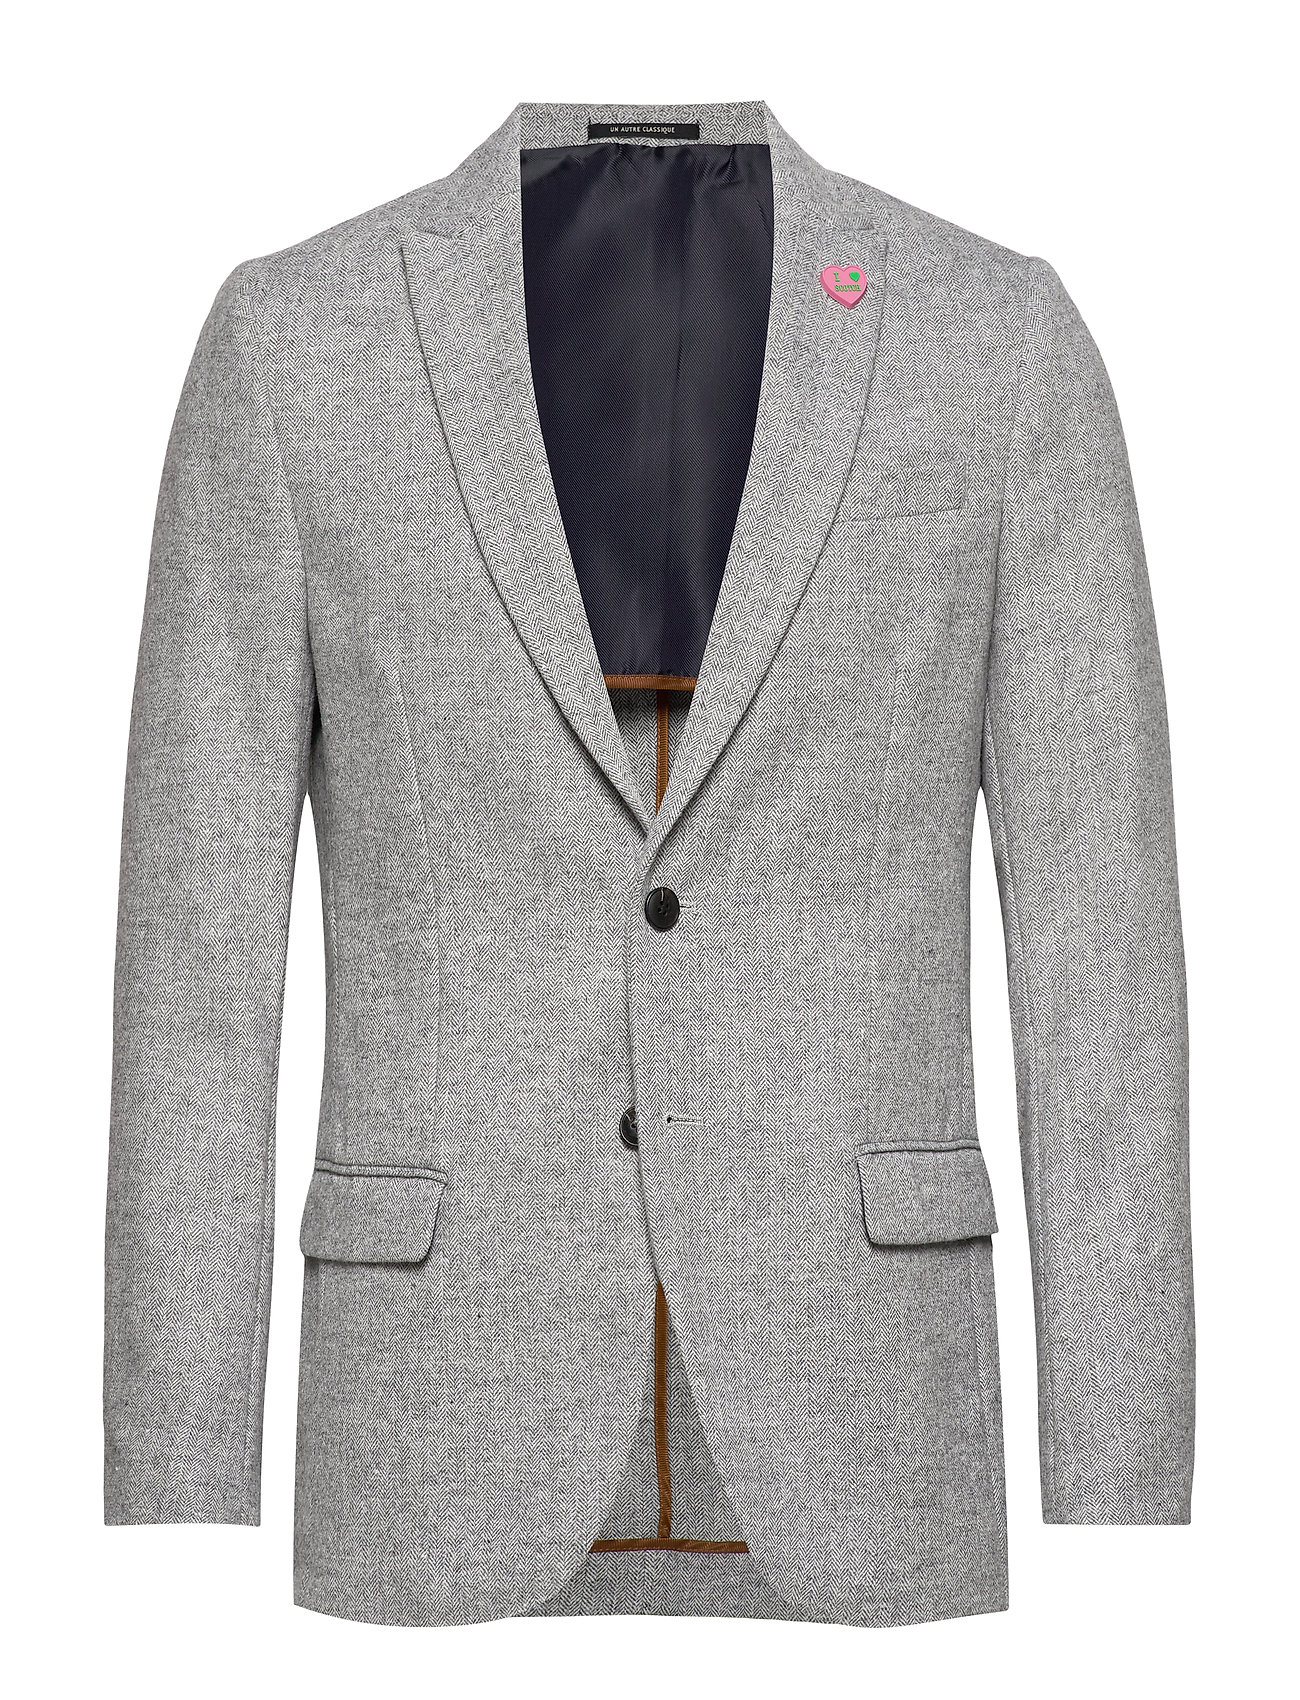 Scotch & Soda Peak lapel blazer in wool-blend quality with neps - COMBO C